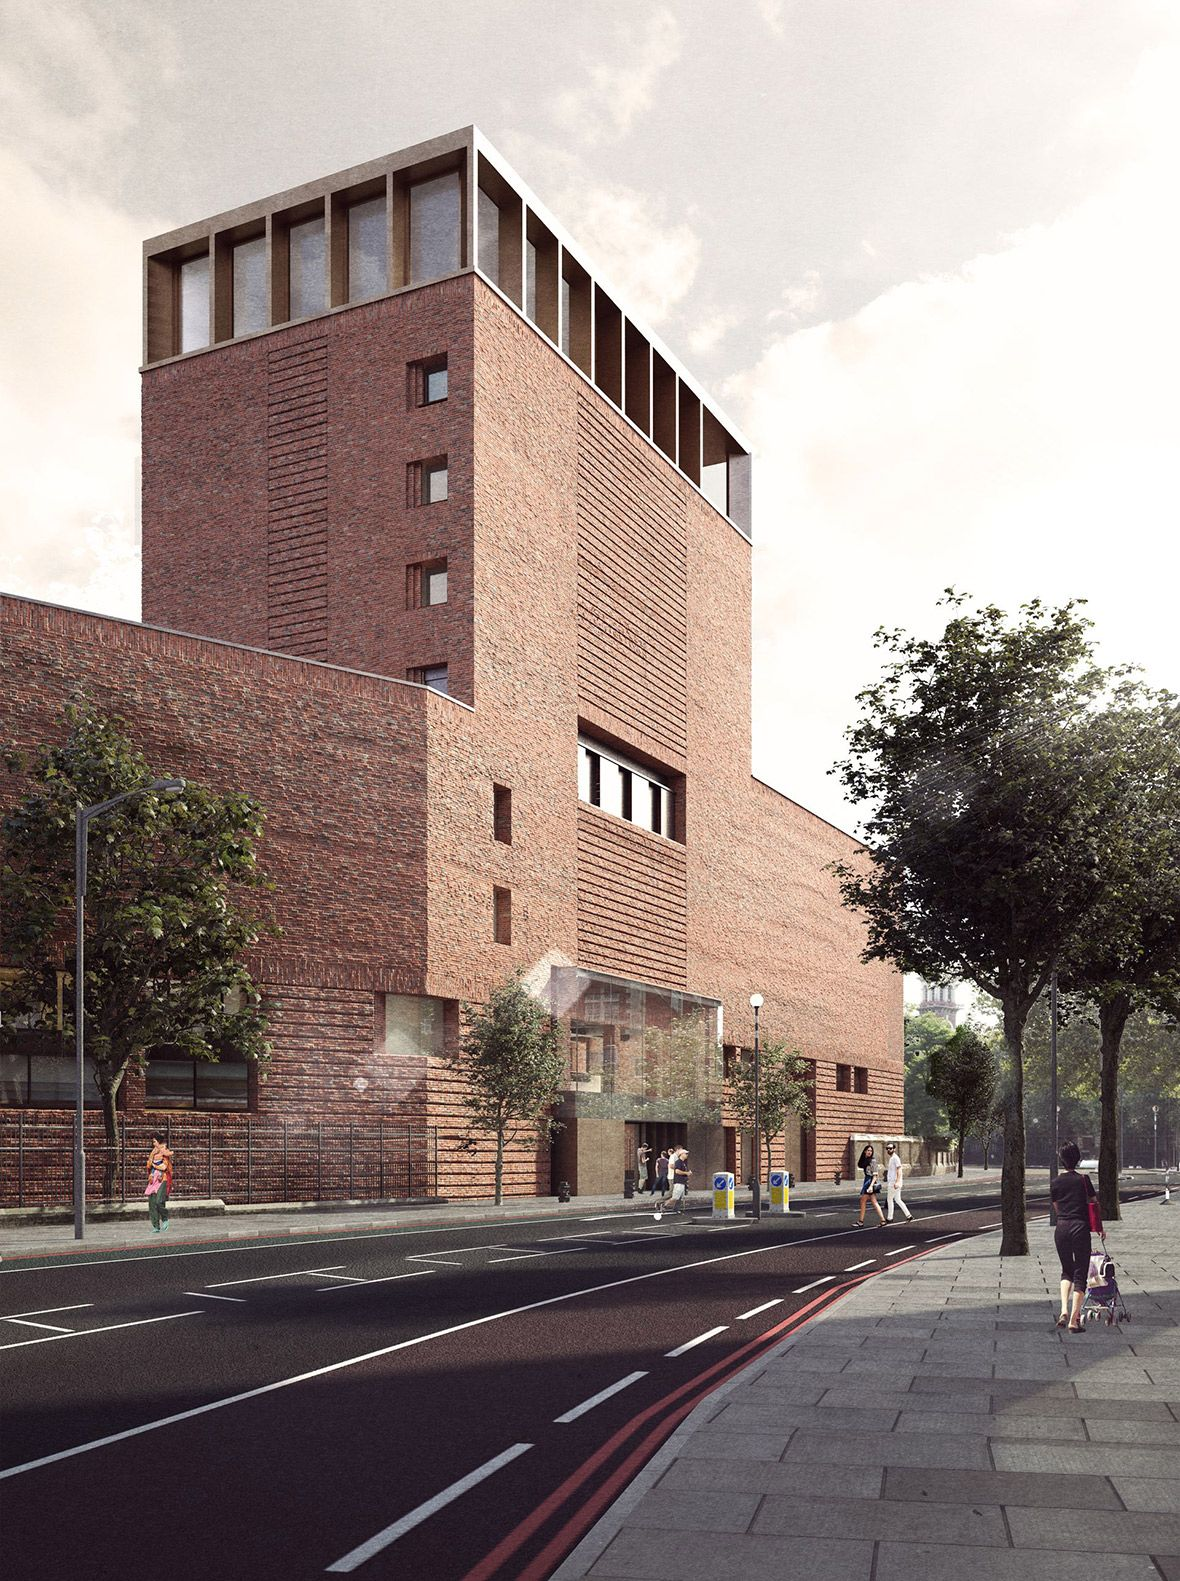 New Library Building From Lambeth Palace Road By Wright Wright